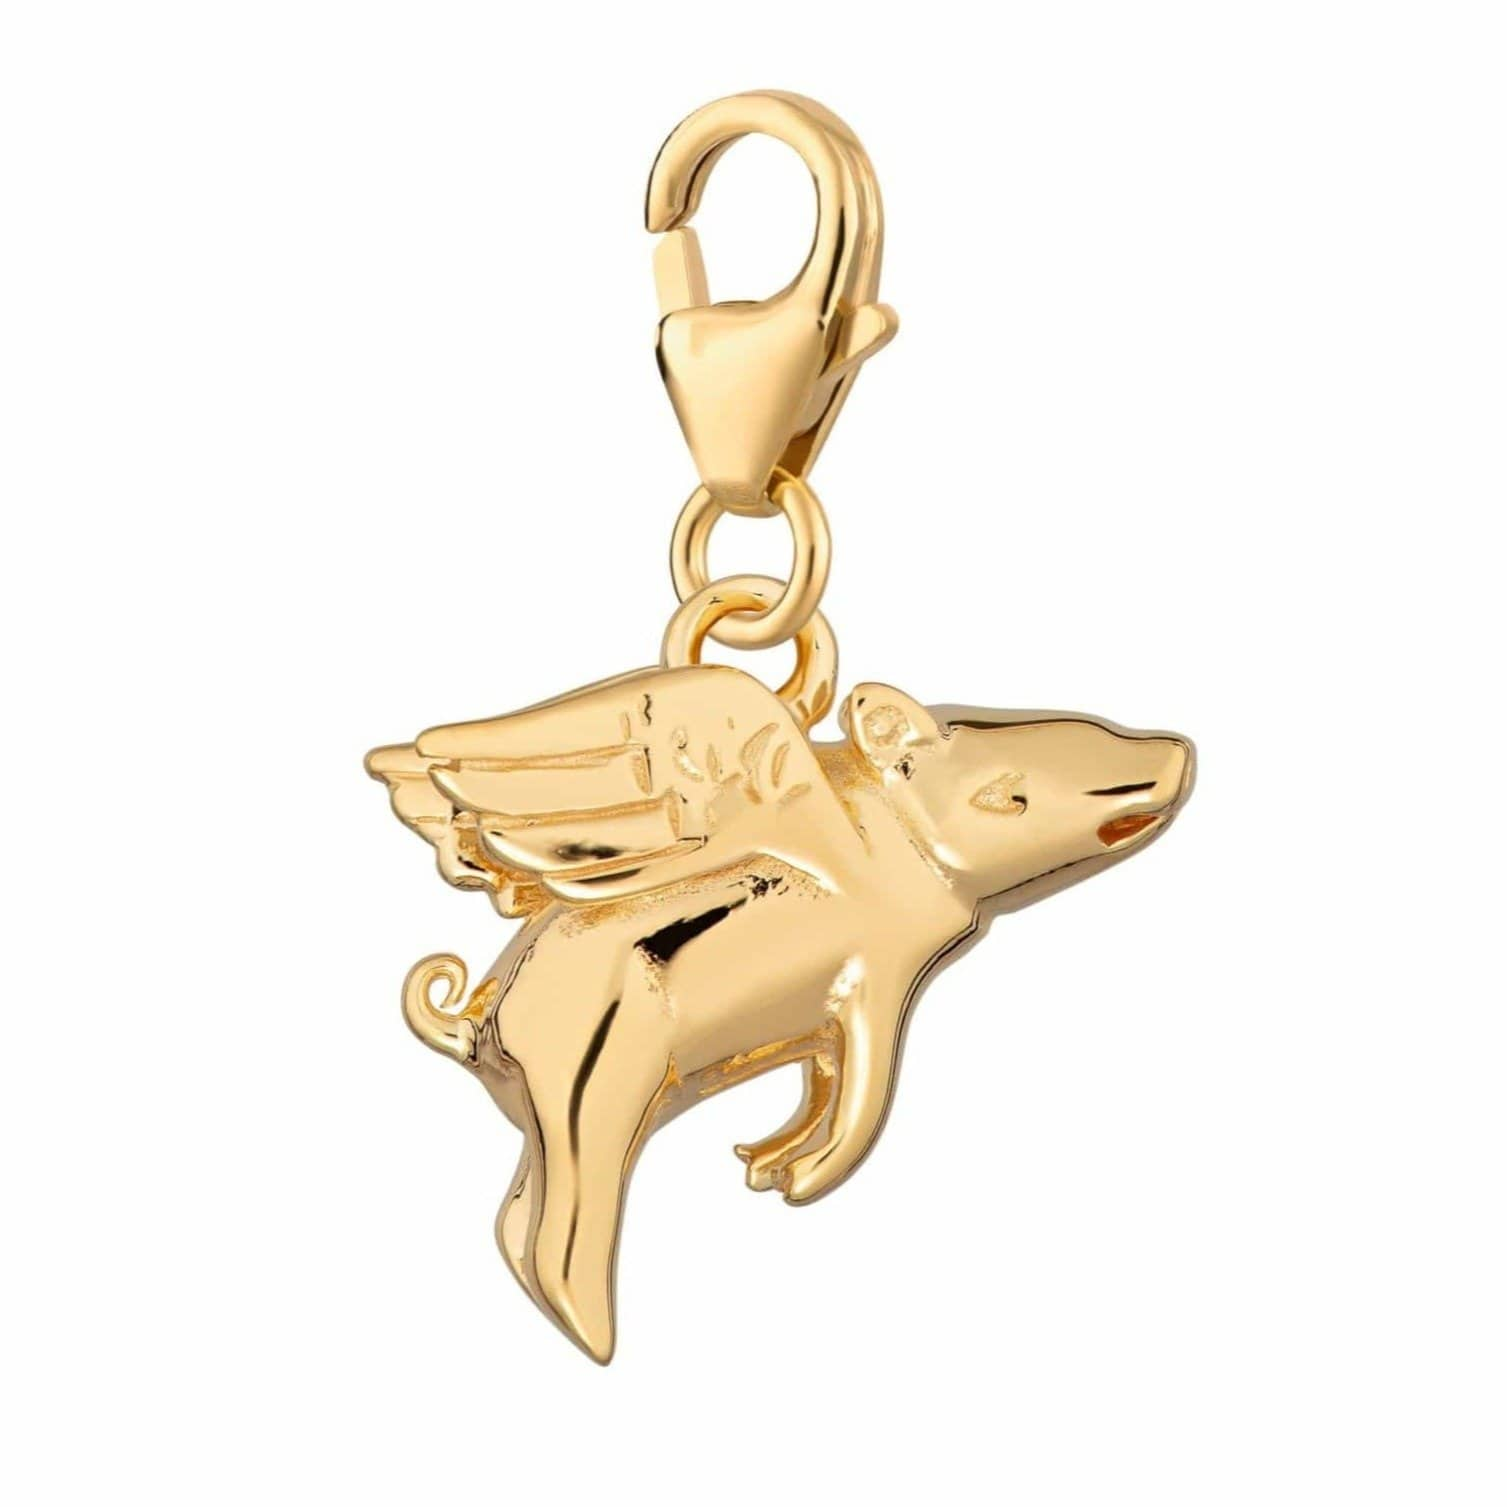 Gold Plated Flying Pig Charm - Lily Charmed